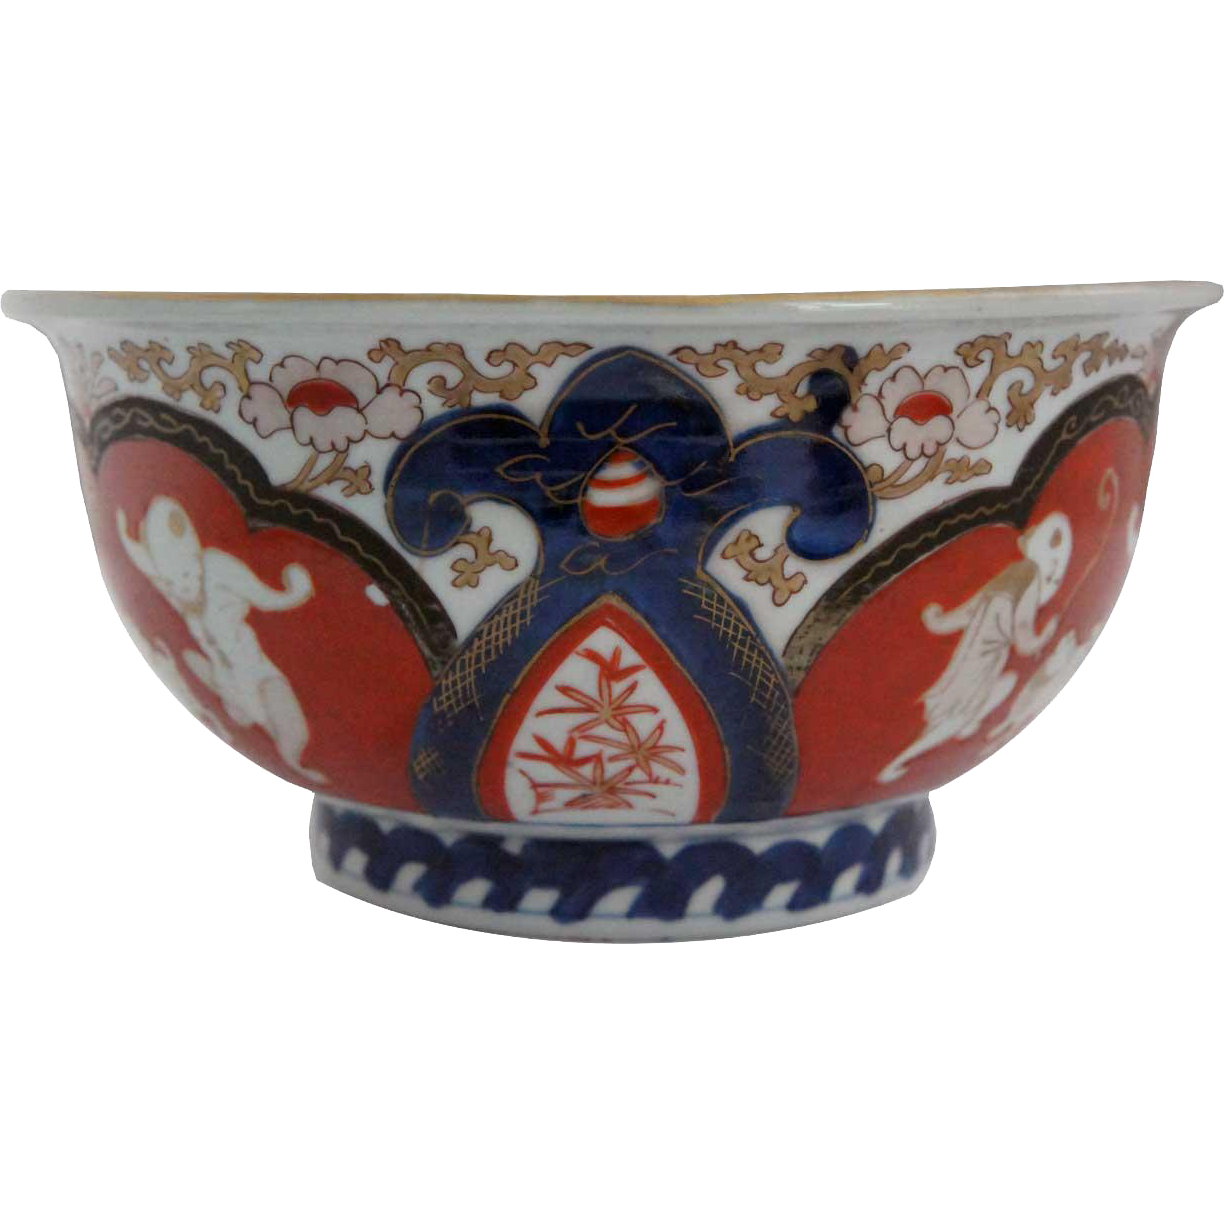 Japanese Imari Porcelain Footed Bowl